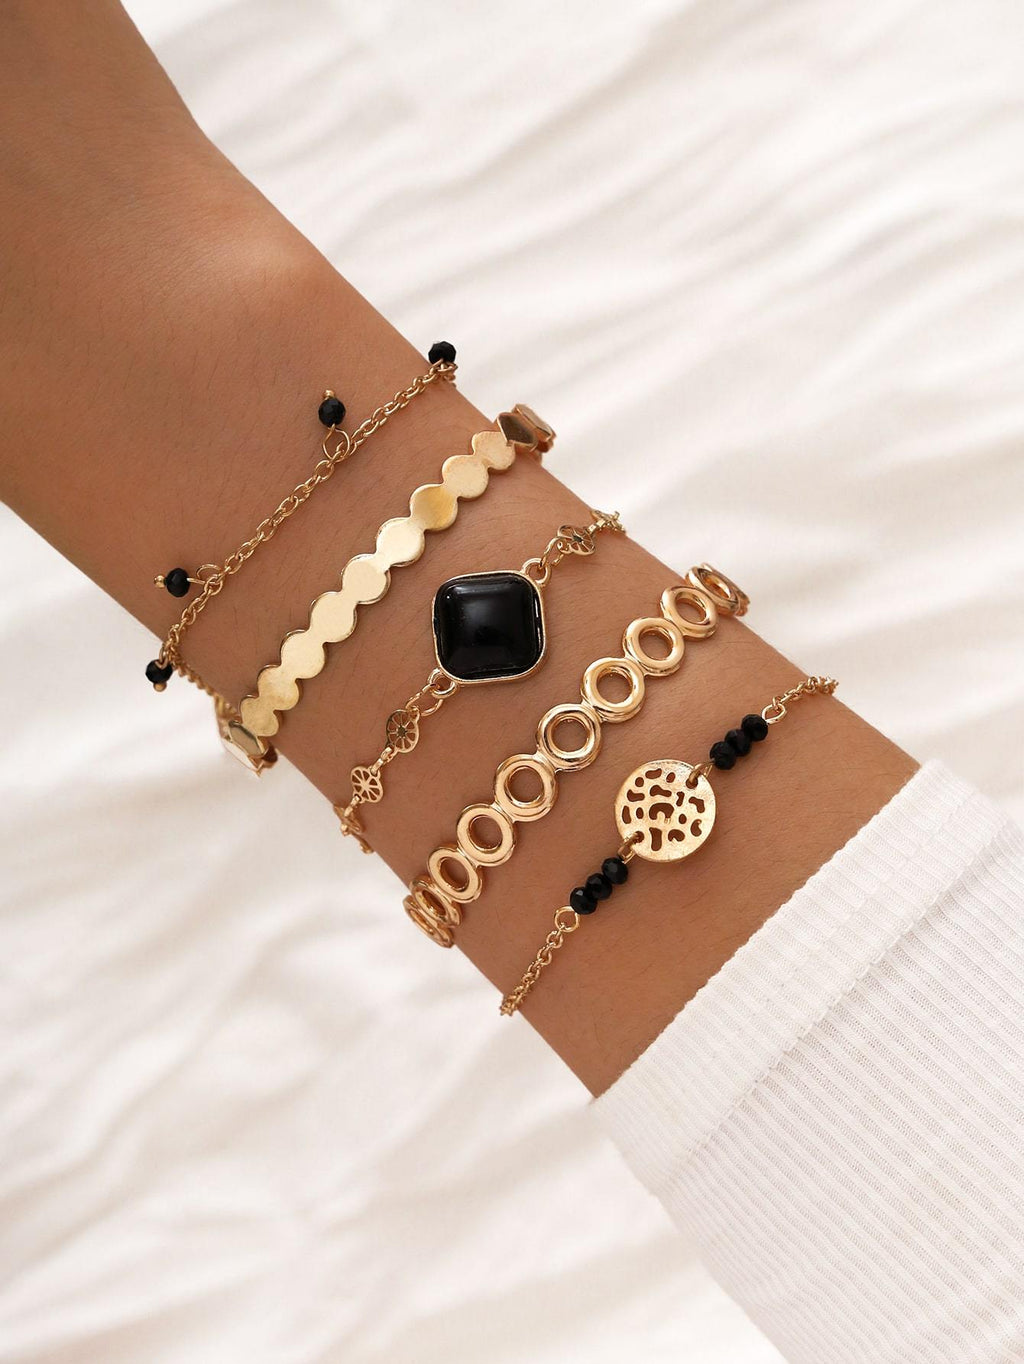 5pcs Geometric Decor Bracelet Shop n Save Pakistan